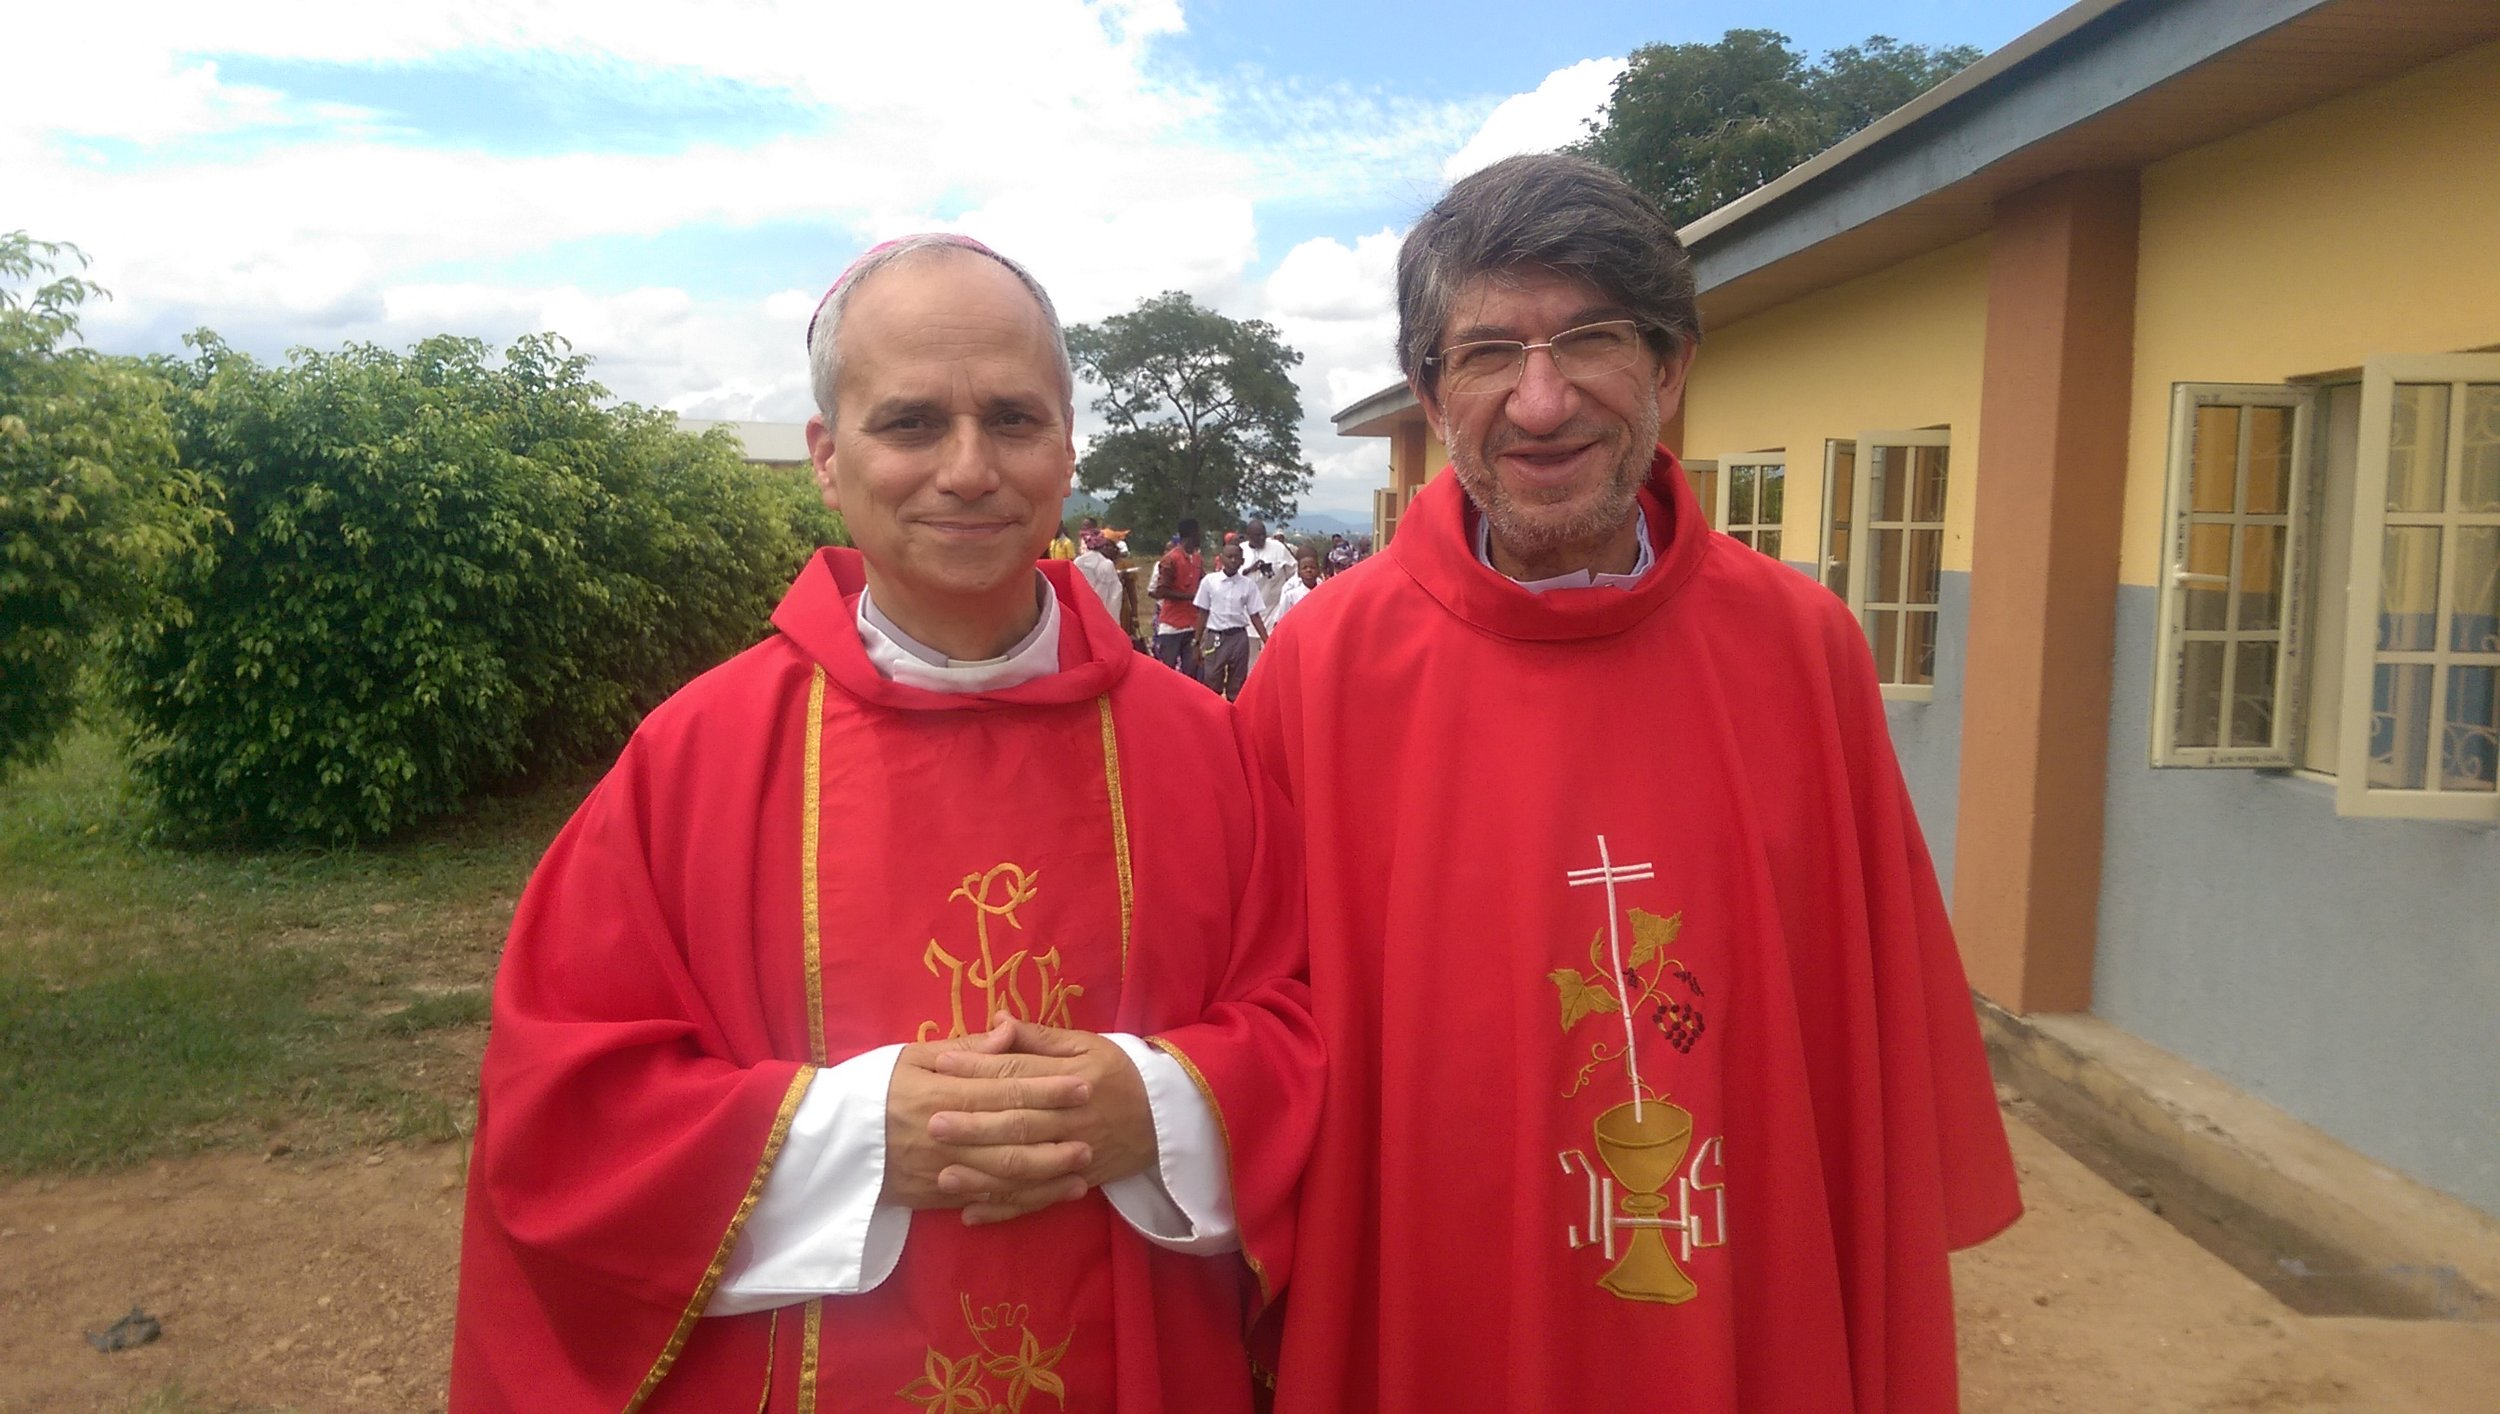 Bishop Robert Prevost, O.S.A., of Chiclayo, Peru; and the Most Reverend Alejandro Moral Antón, O.S.A., Prior General of the Augustinian Order